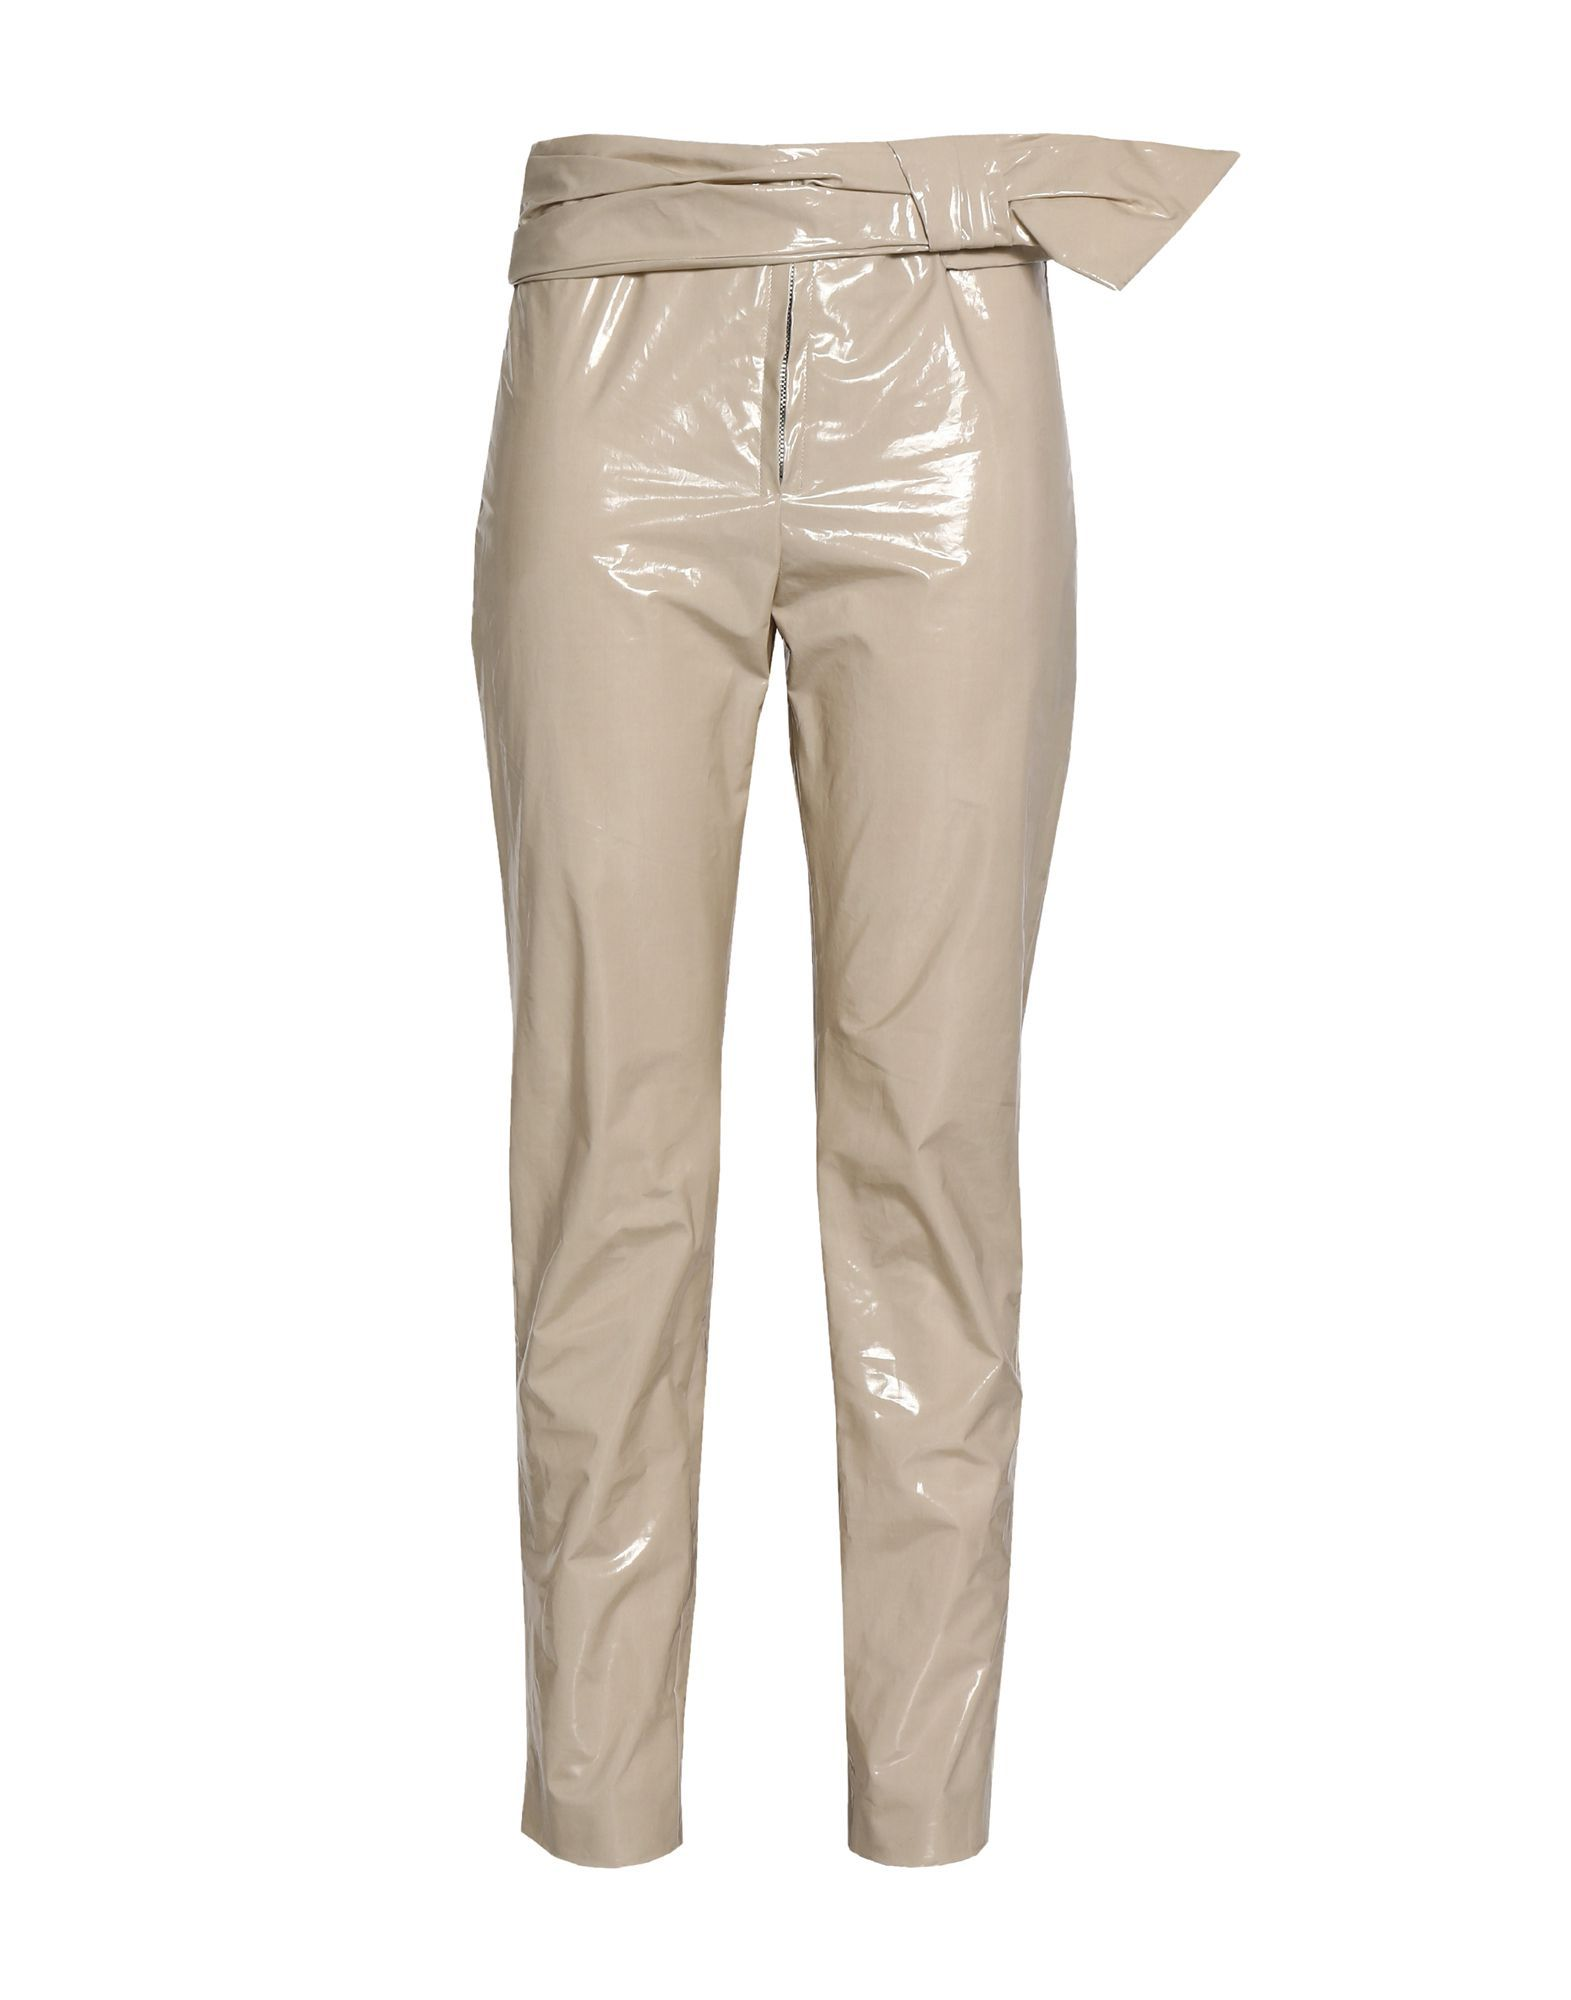 Isabel Marant Beige Varnished Effect Cotton High Waisted Trousers